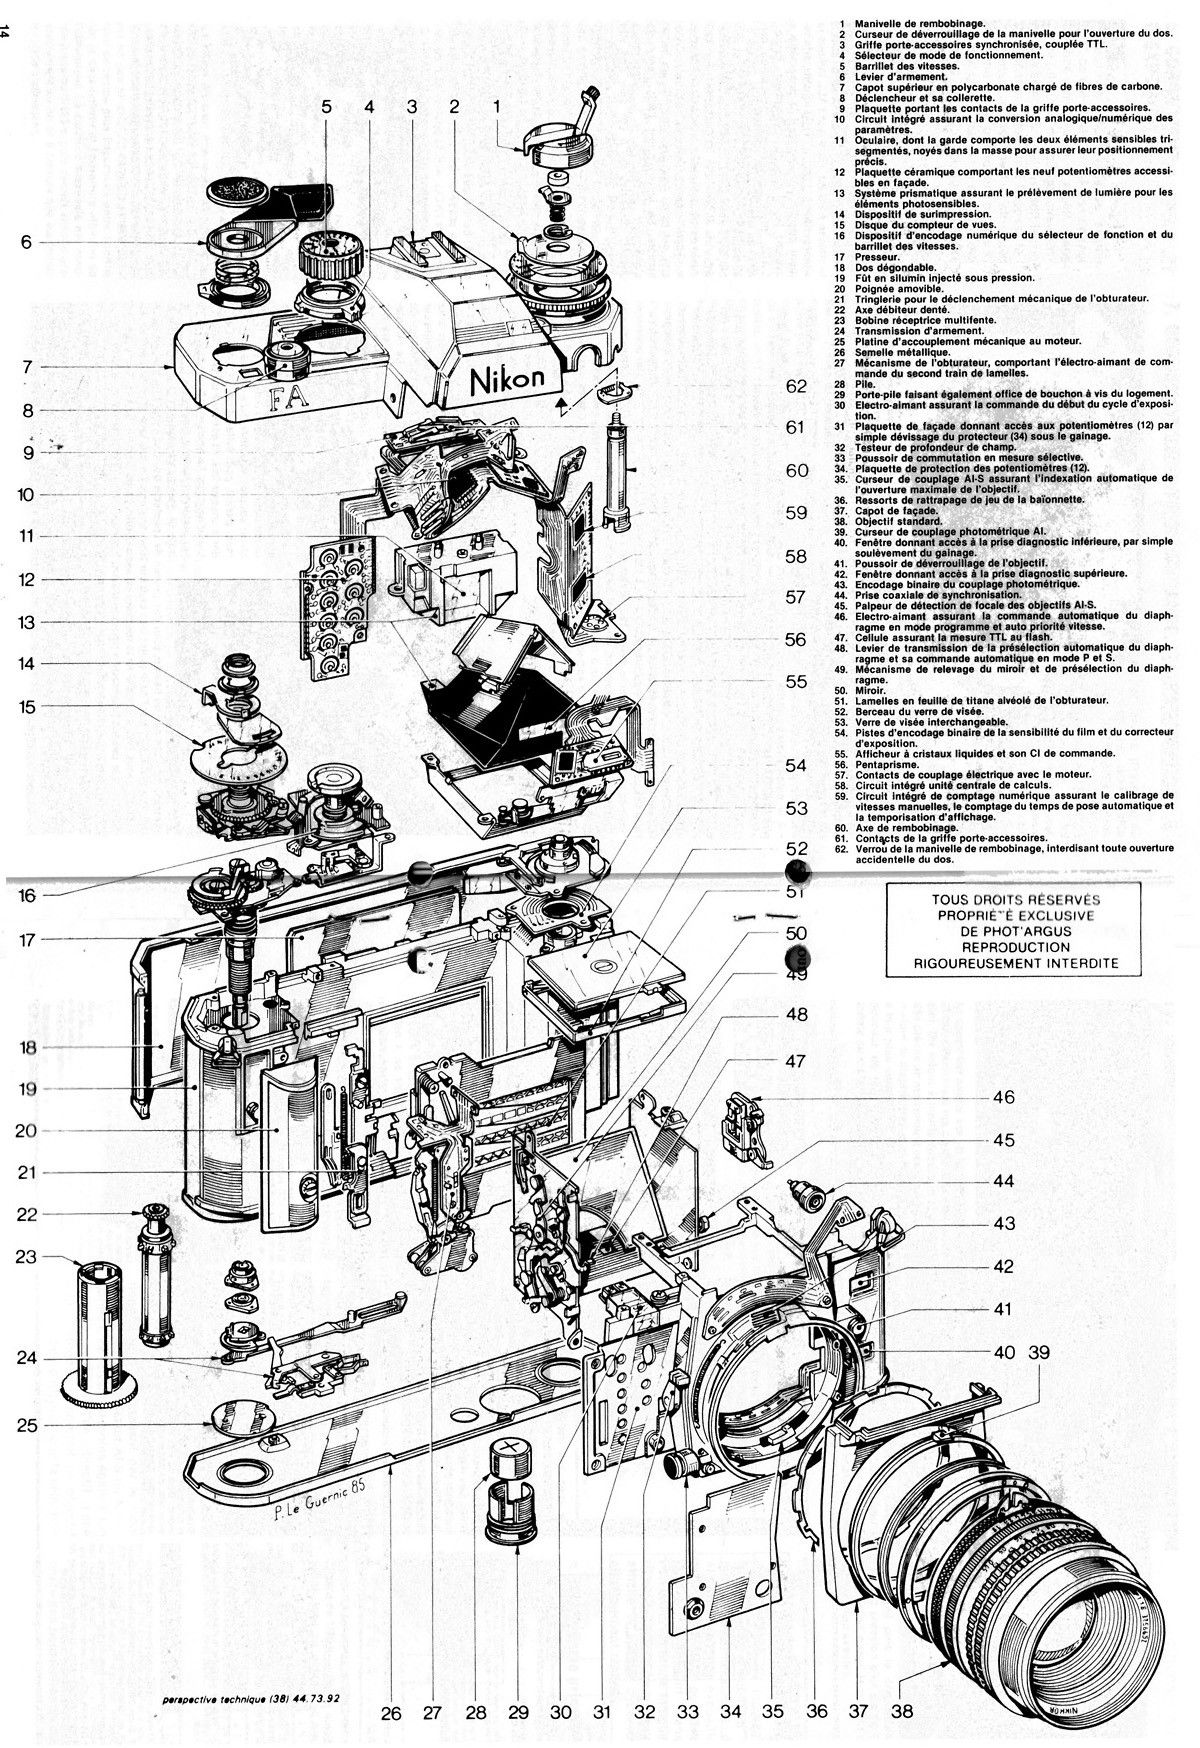 simple exploded view diagram kenmore dryer wiring manual these schematics offer an of old nikon slr